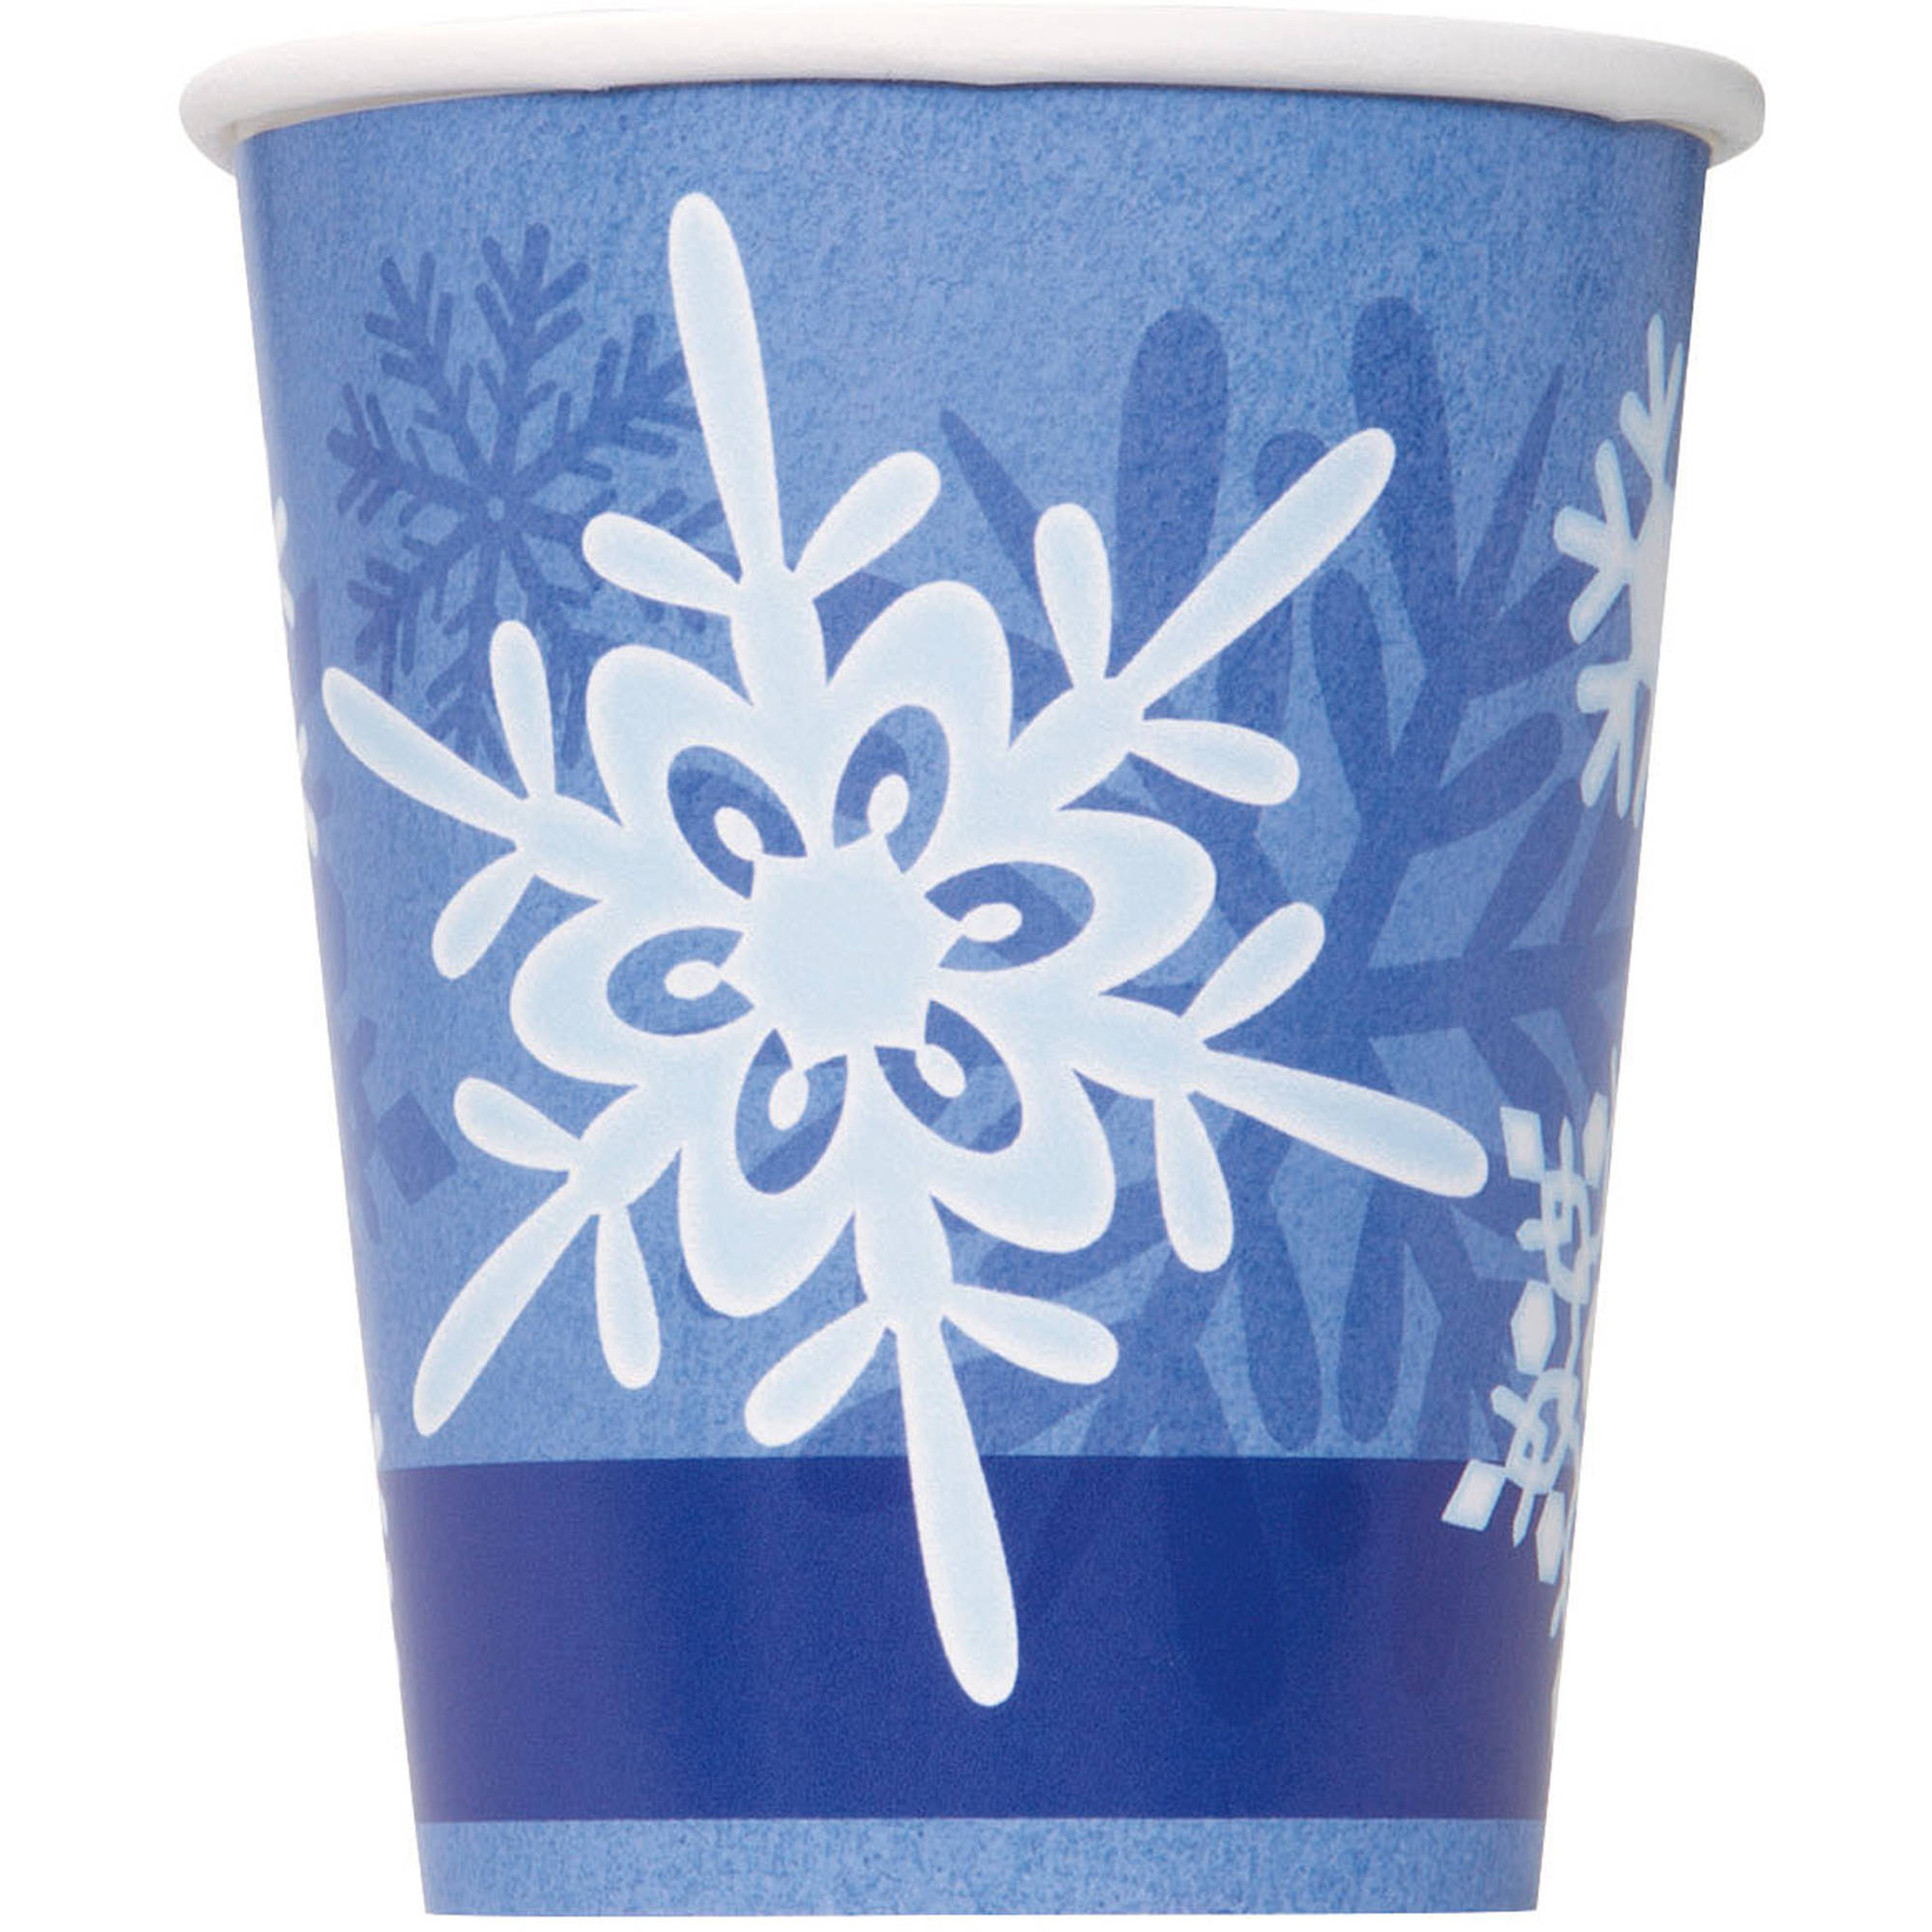 9oz Winter Snowflake Holiday Paper Cups, 8ct